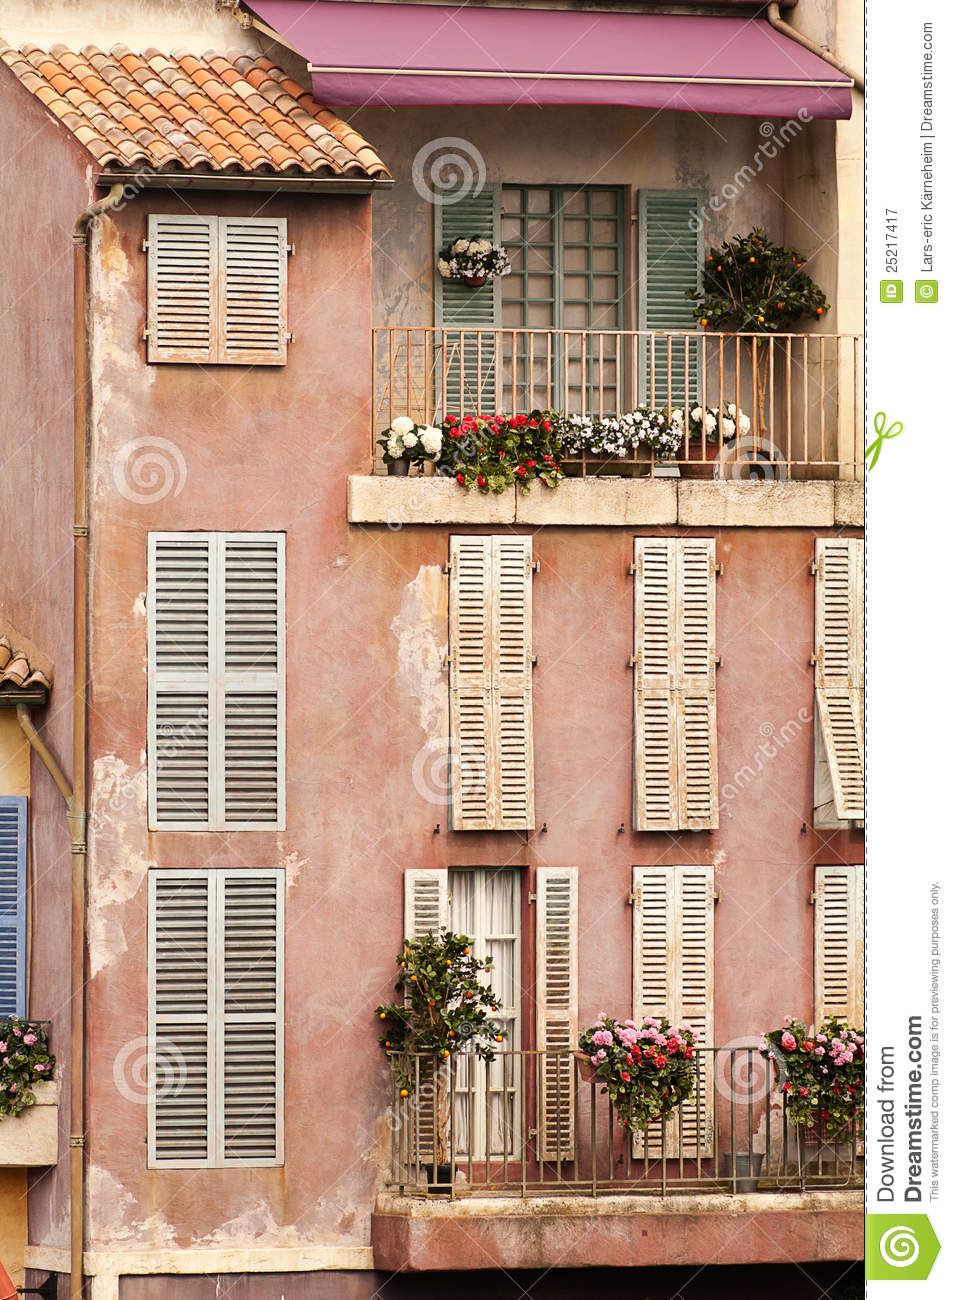 French balcony in paris stock image image of nobody for Balcony french